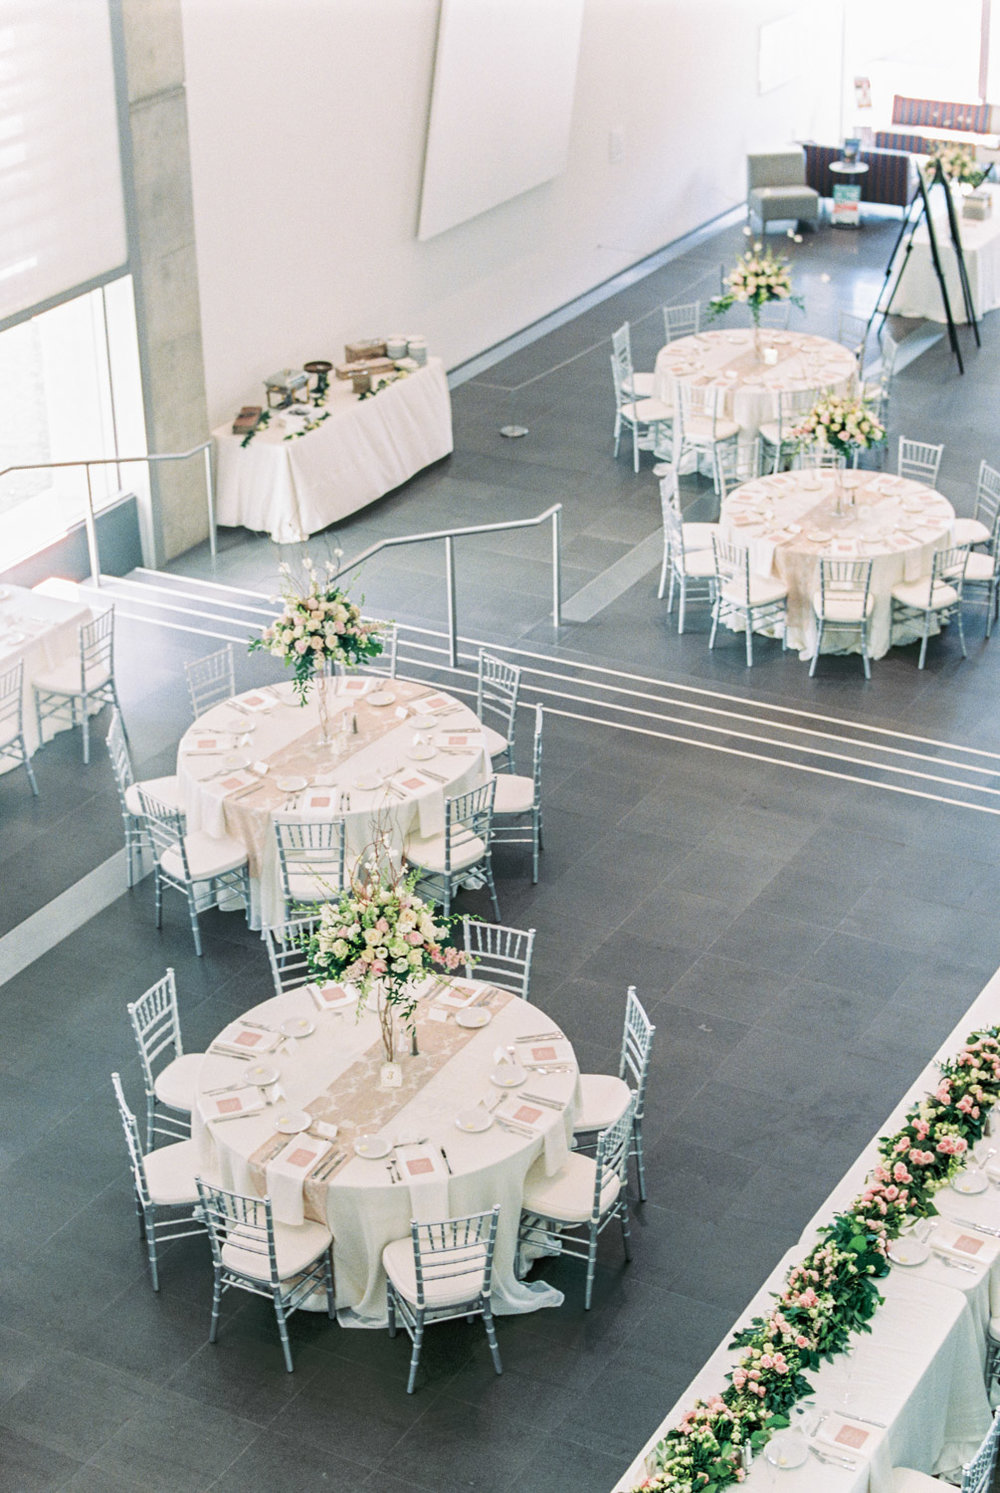 Grand Rapids Michigan Wedding by Michelle Lange Photography-45.jpg